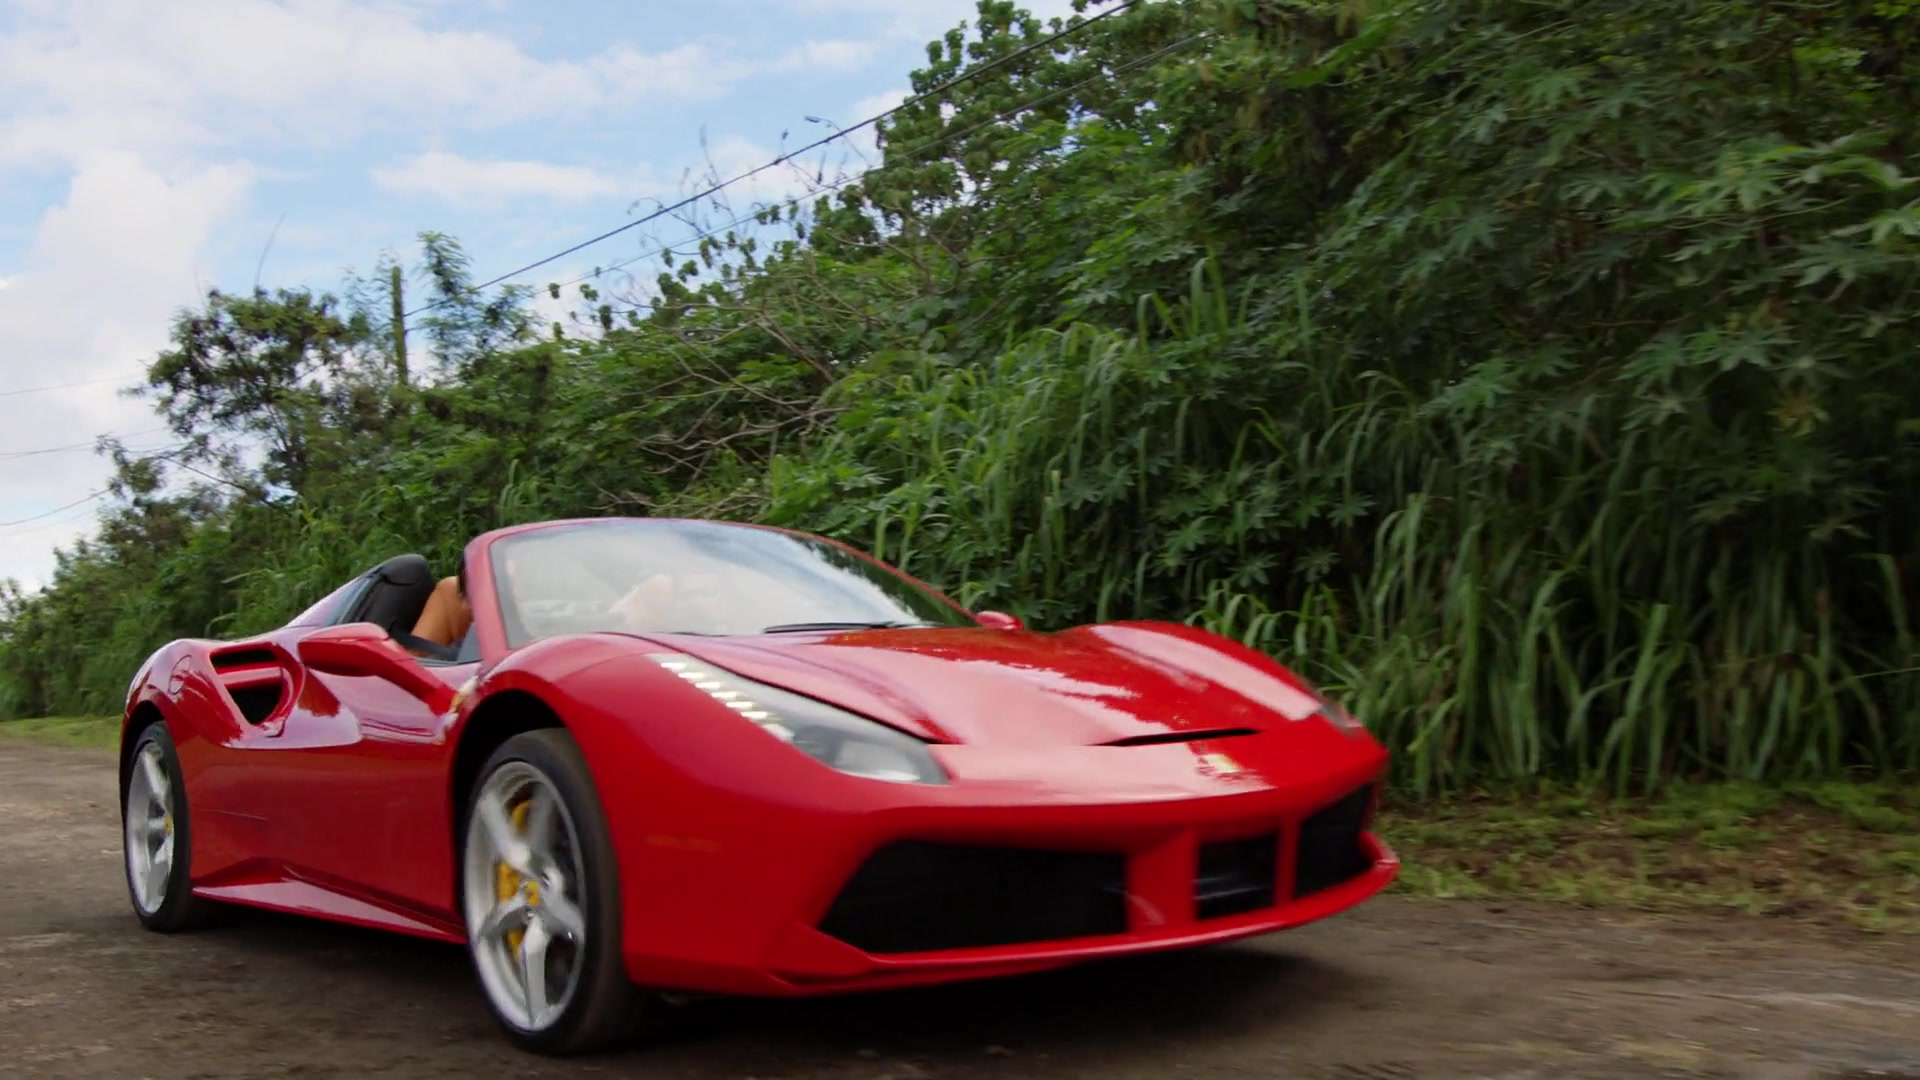 Exotic Car Brands >> Ferrari 488 Spider Red Sports Car Used by Jay Hernandez in ...